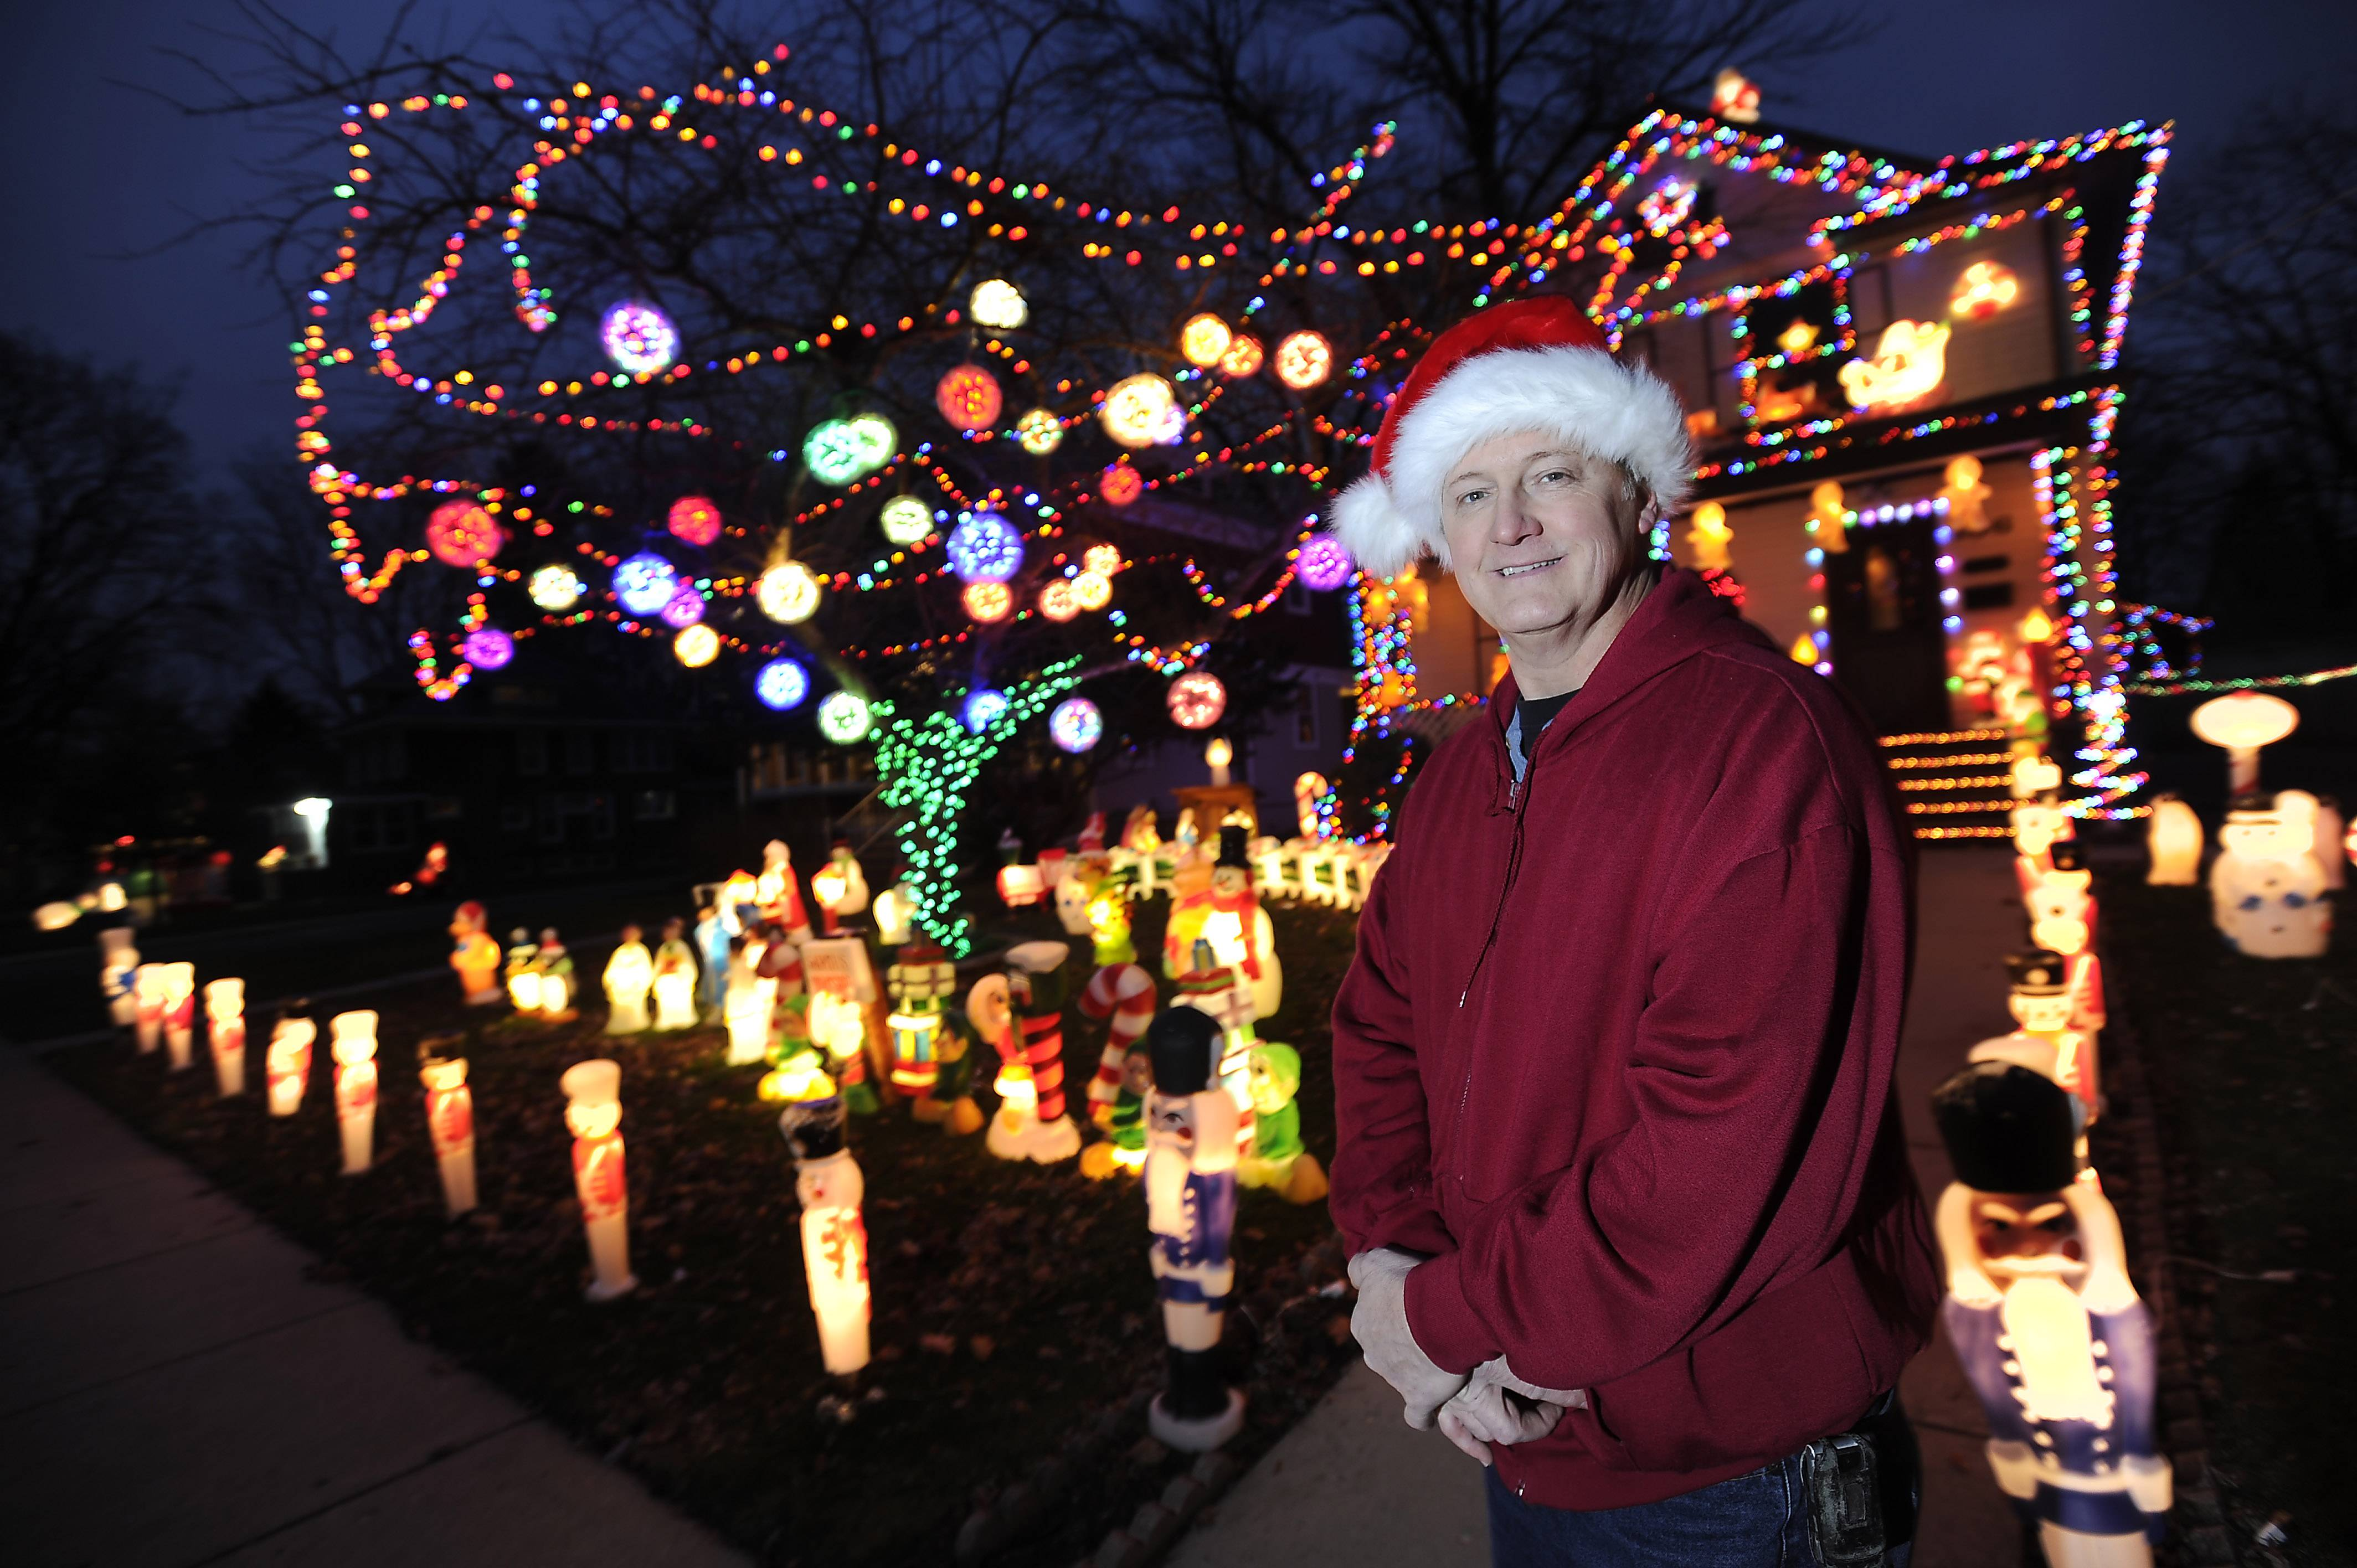 Elgin's Mike Arnold is the winner of the holiday lights contest sponsored by the Daily Herald.